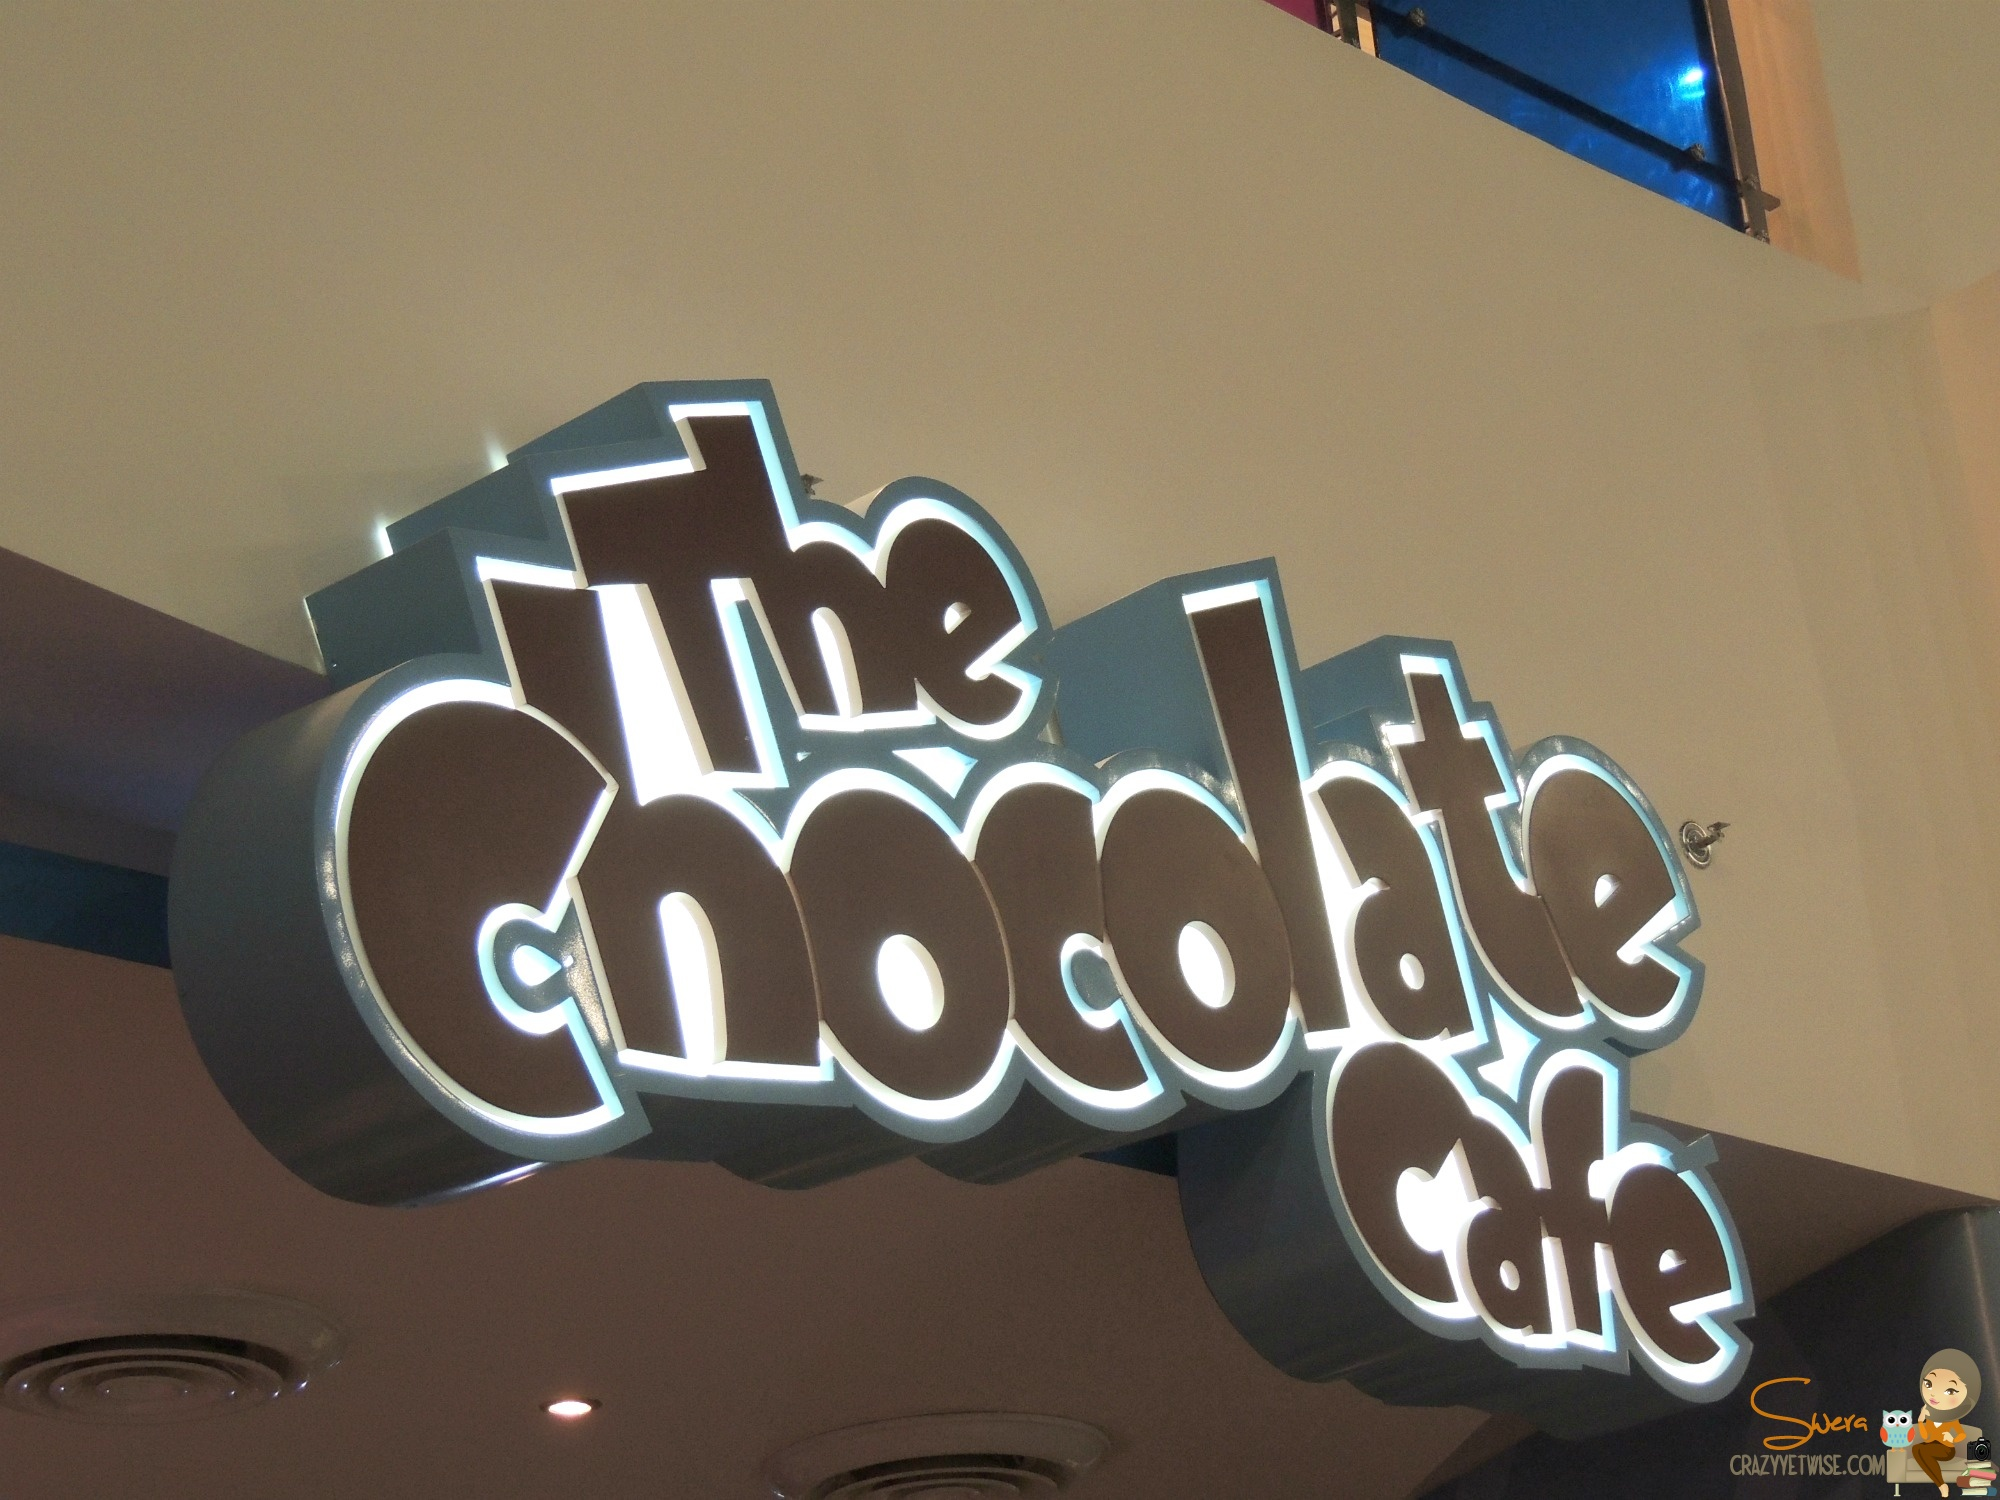 The Official Opening of The Chocolate Cafe | Crazy Yet Wise